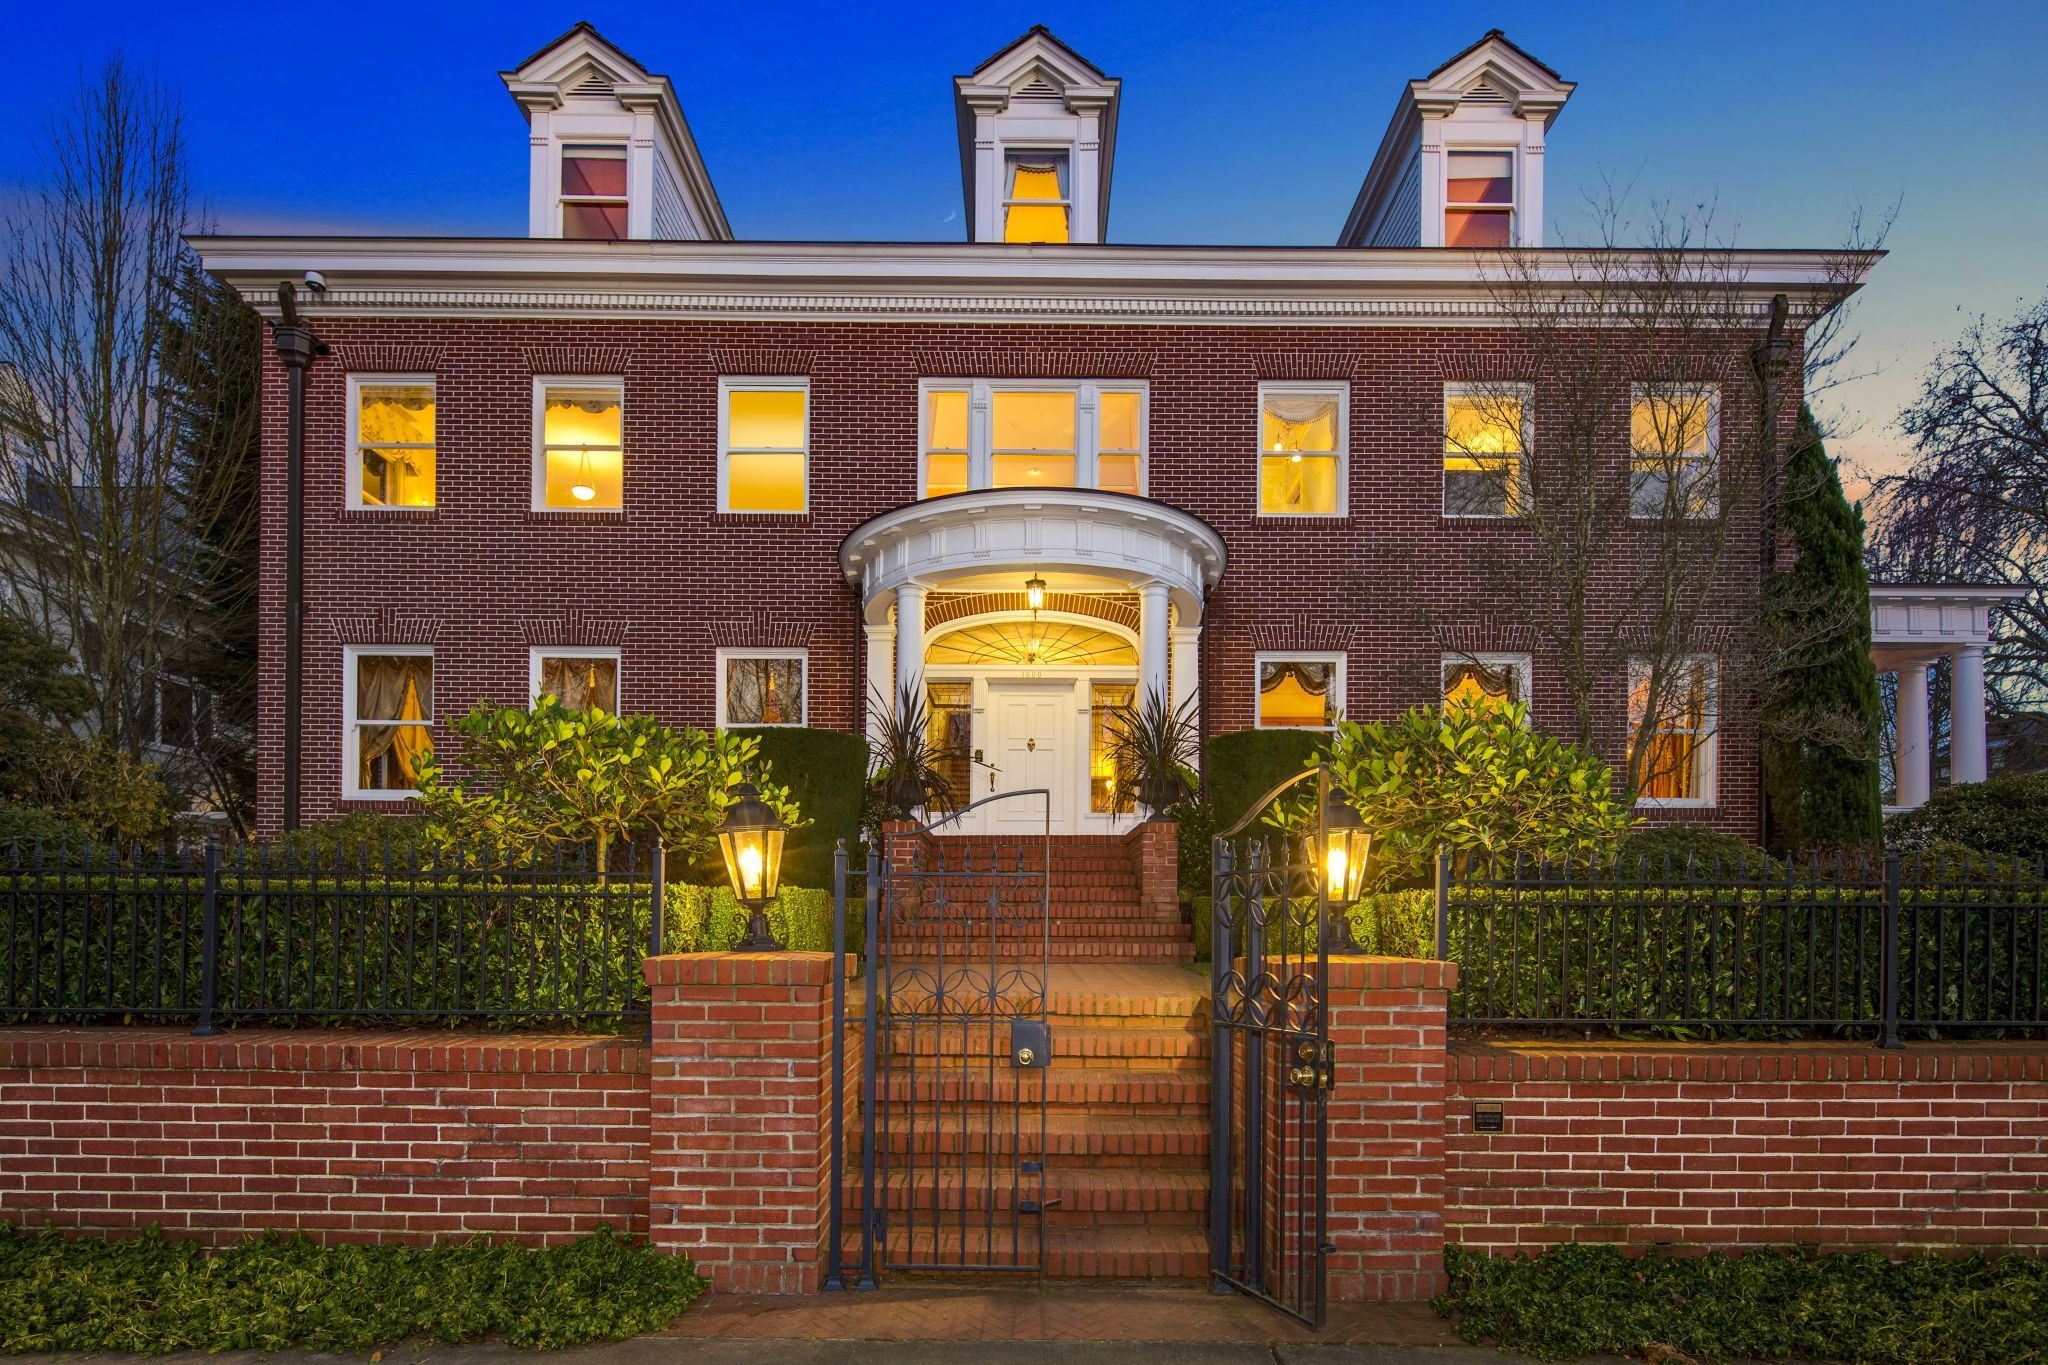 Historic Eckstein Estate On Capitol Hill Yours For 7 5m In 2020 Mansions Mansions For Sale Old Houses